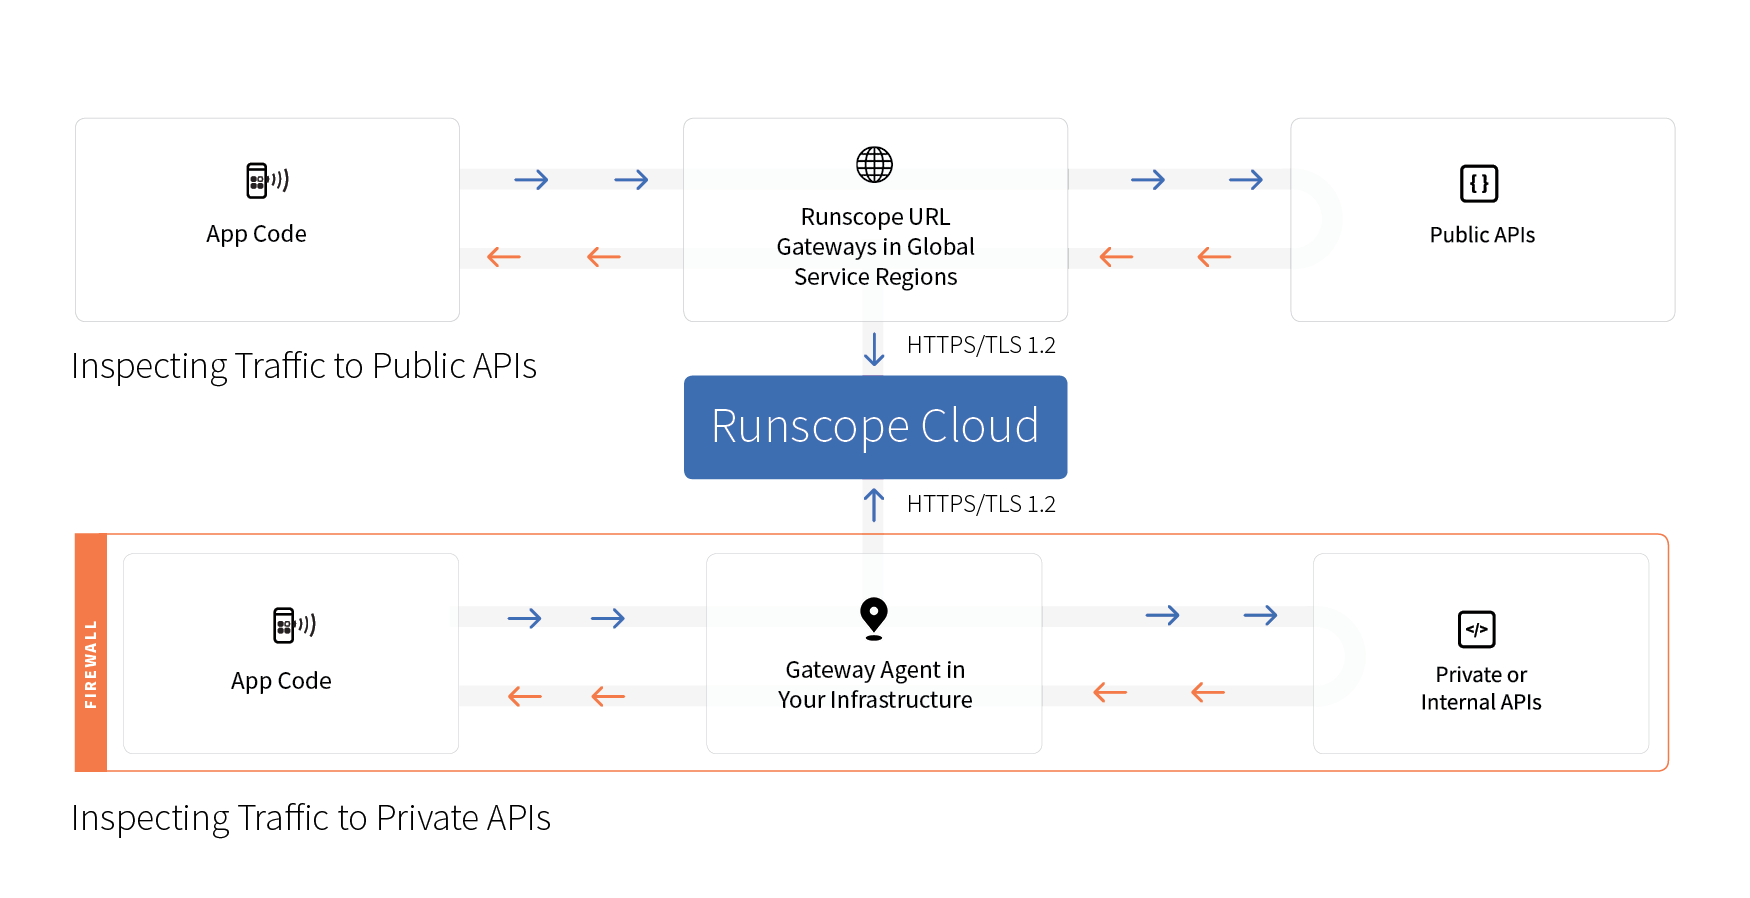 How Runscope Gateway Agent works